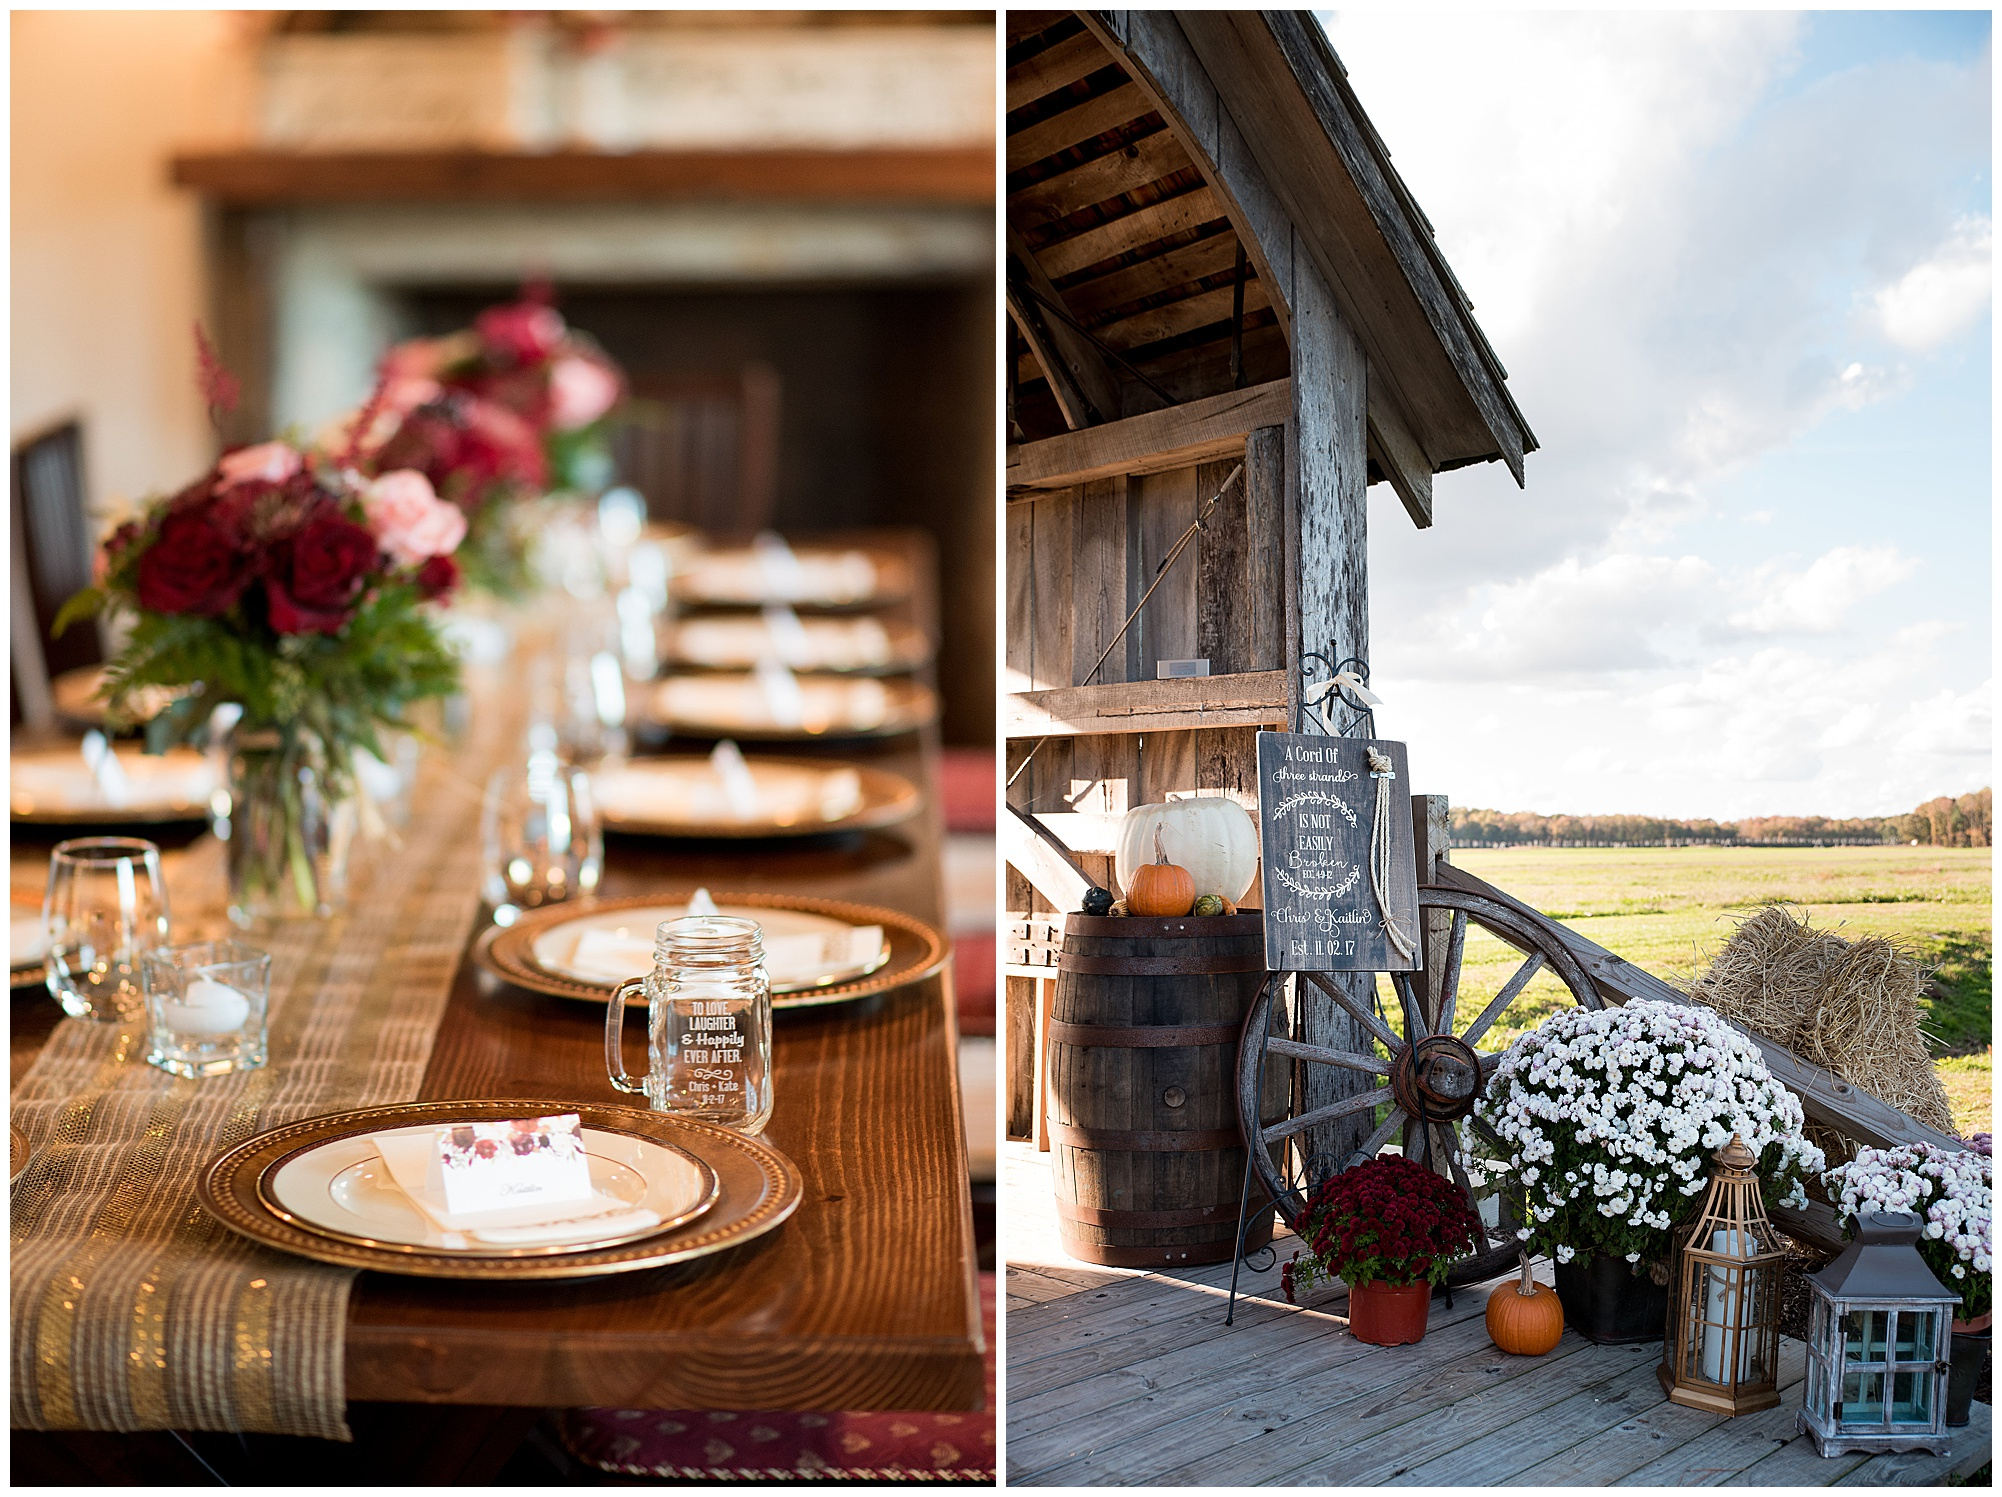 wedding photos at covered bridge inn bed and breakfast farm in lewes delaware. historic wedding barn venue on the eastern shore. fall wedding in november with rustic decor theme. photo of banquet table style reception and ceremony decor with fall mums, pumpkins, wagon wheels, and lanterns.